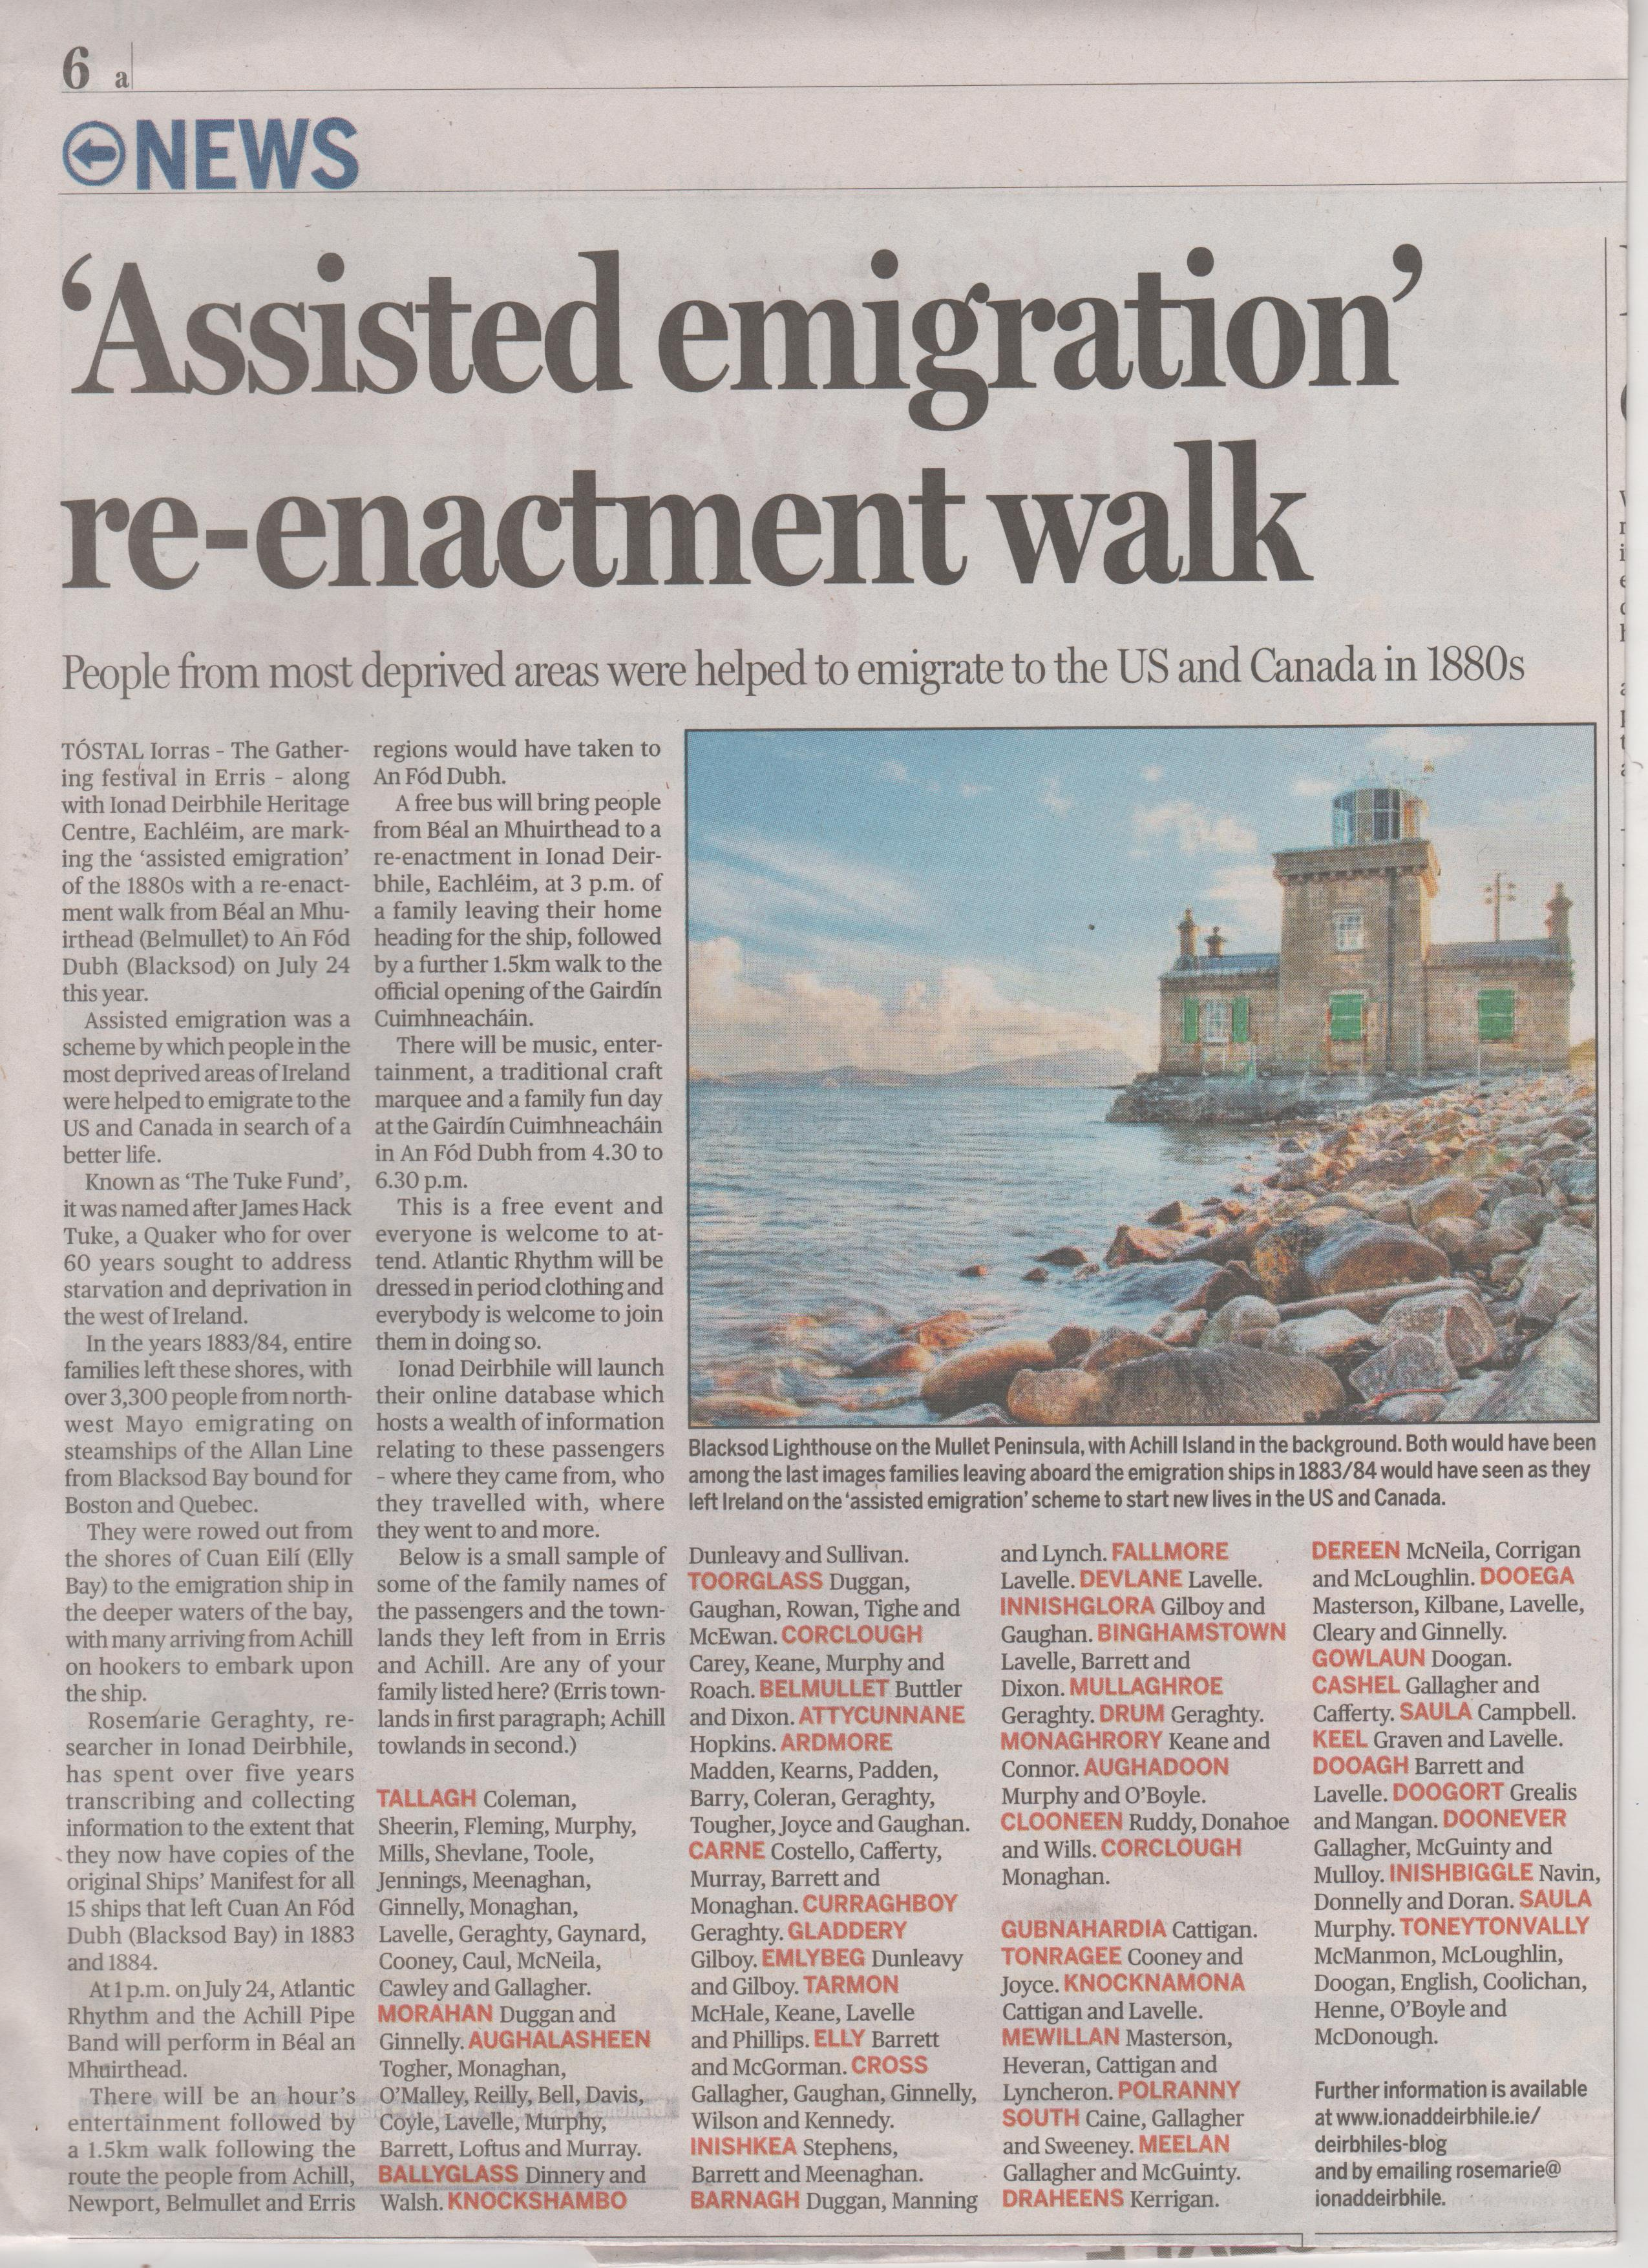 Article re Emigration from North West Mayo in 1883 - 1884